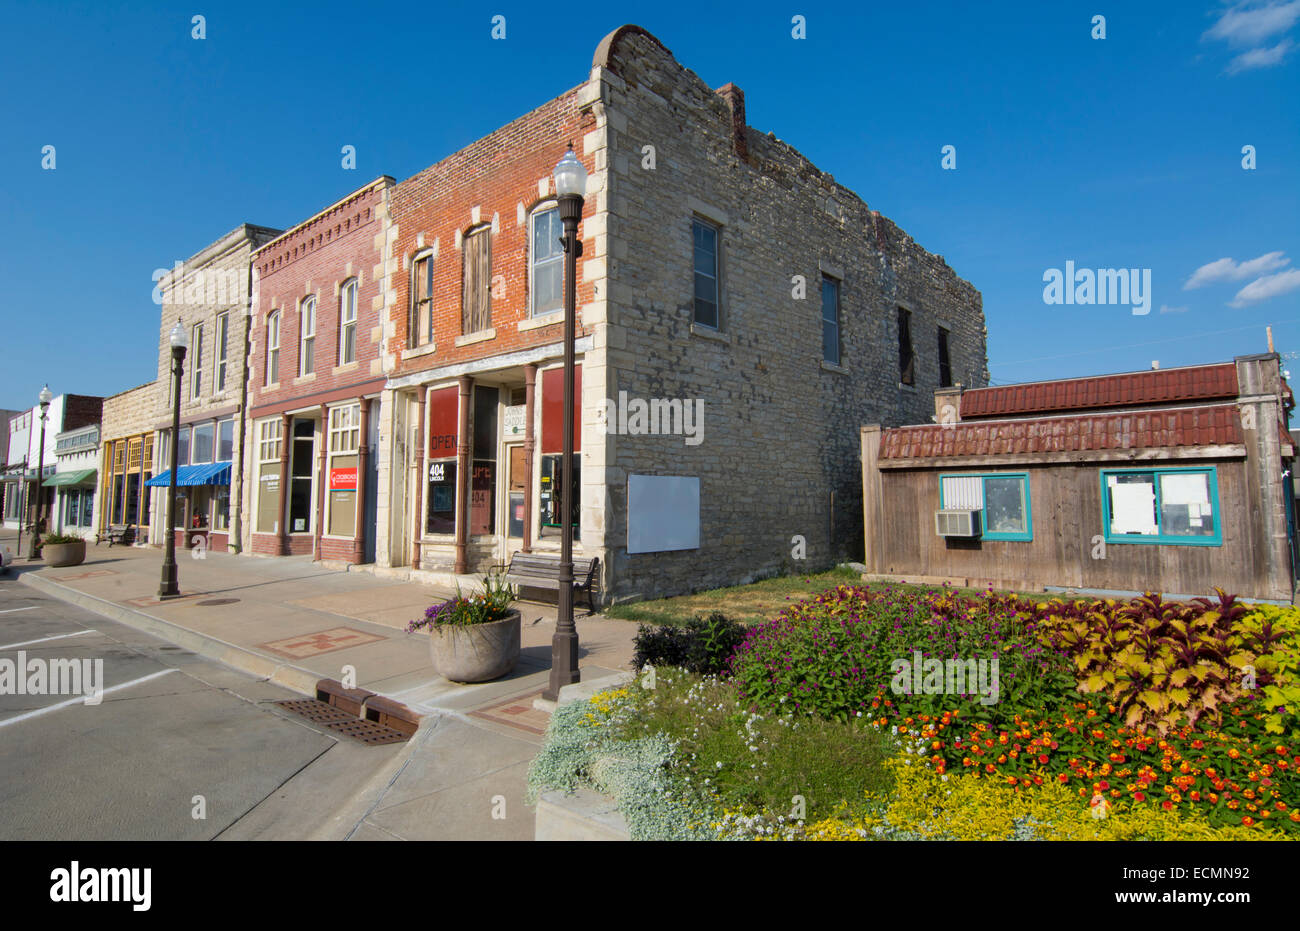 Wamego Kansas  from The Wizard of Oz going home to Kansas main street called Lincoln Avenue shops and stores - Stock Image